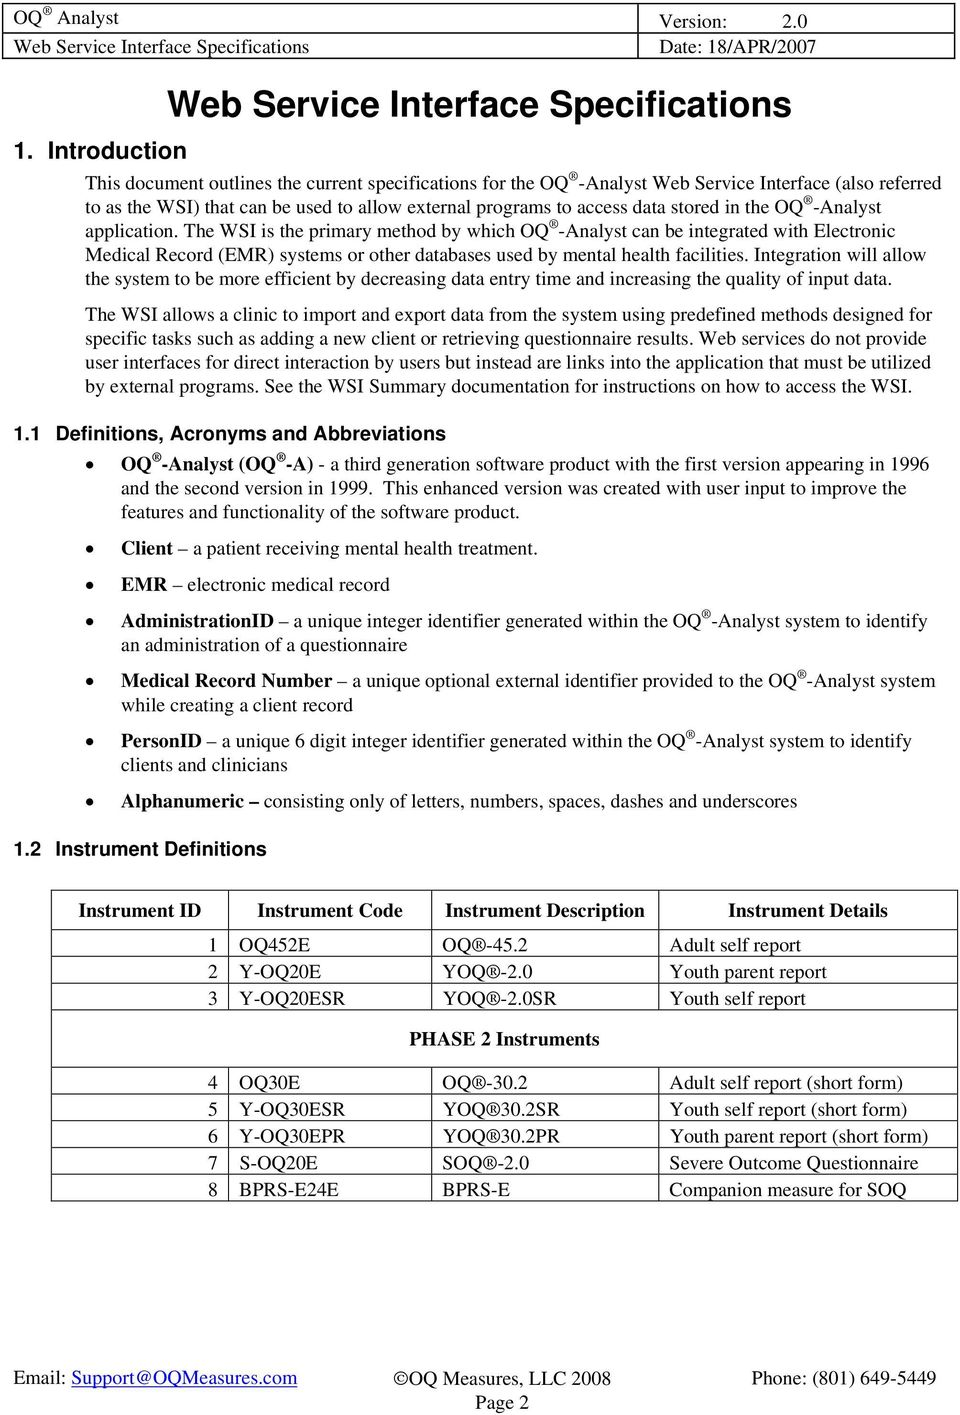 OQ Analyst Web Service Interface Specifications  Version PDF